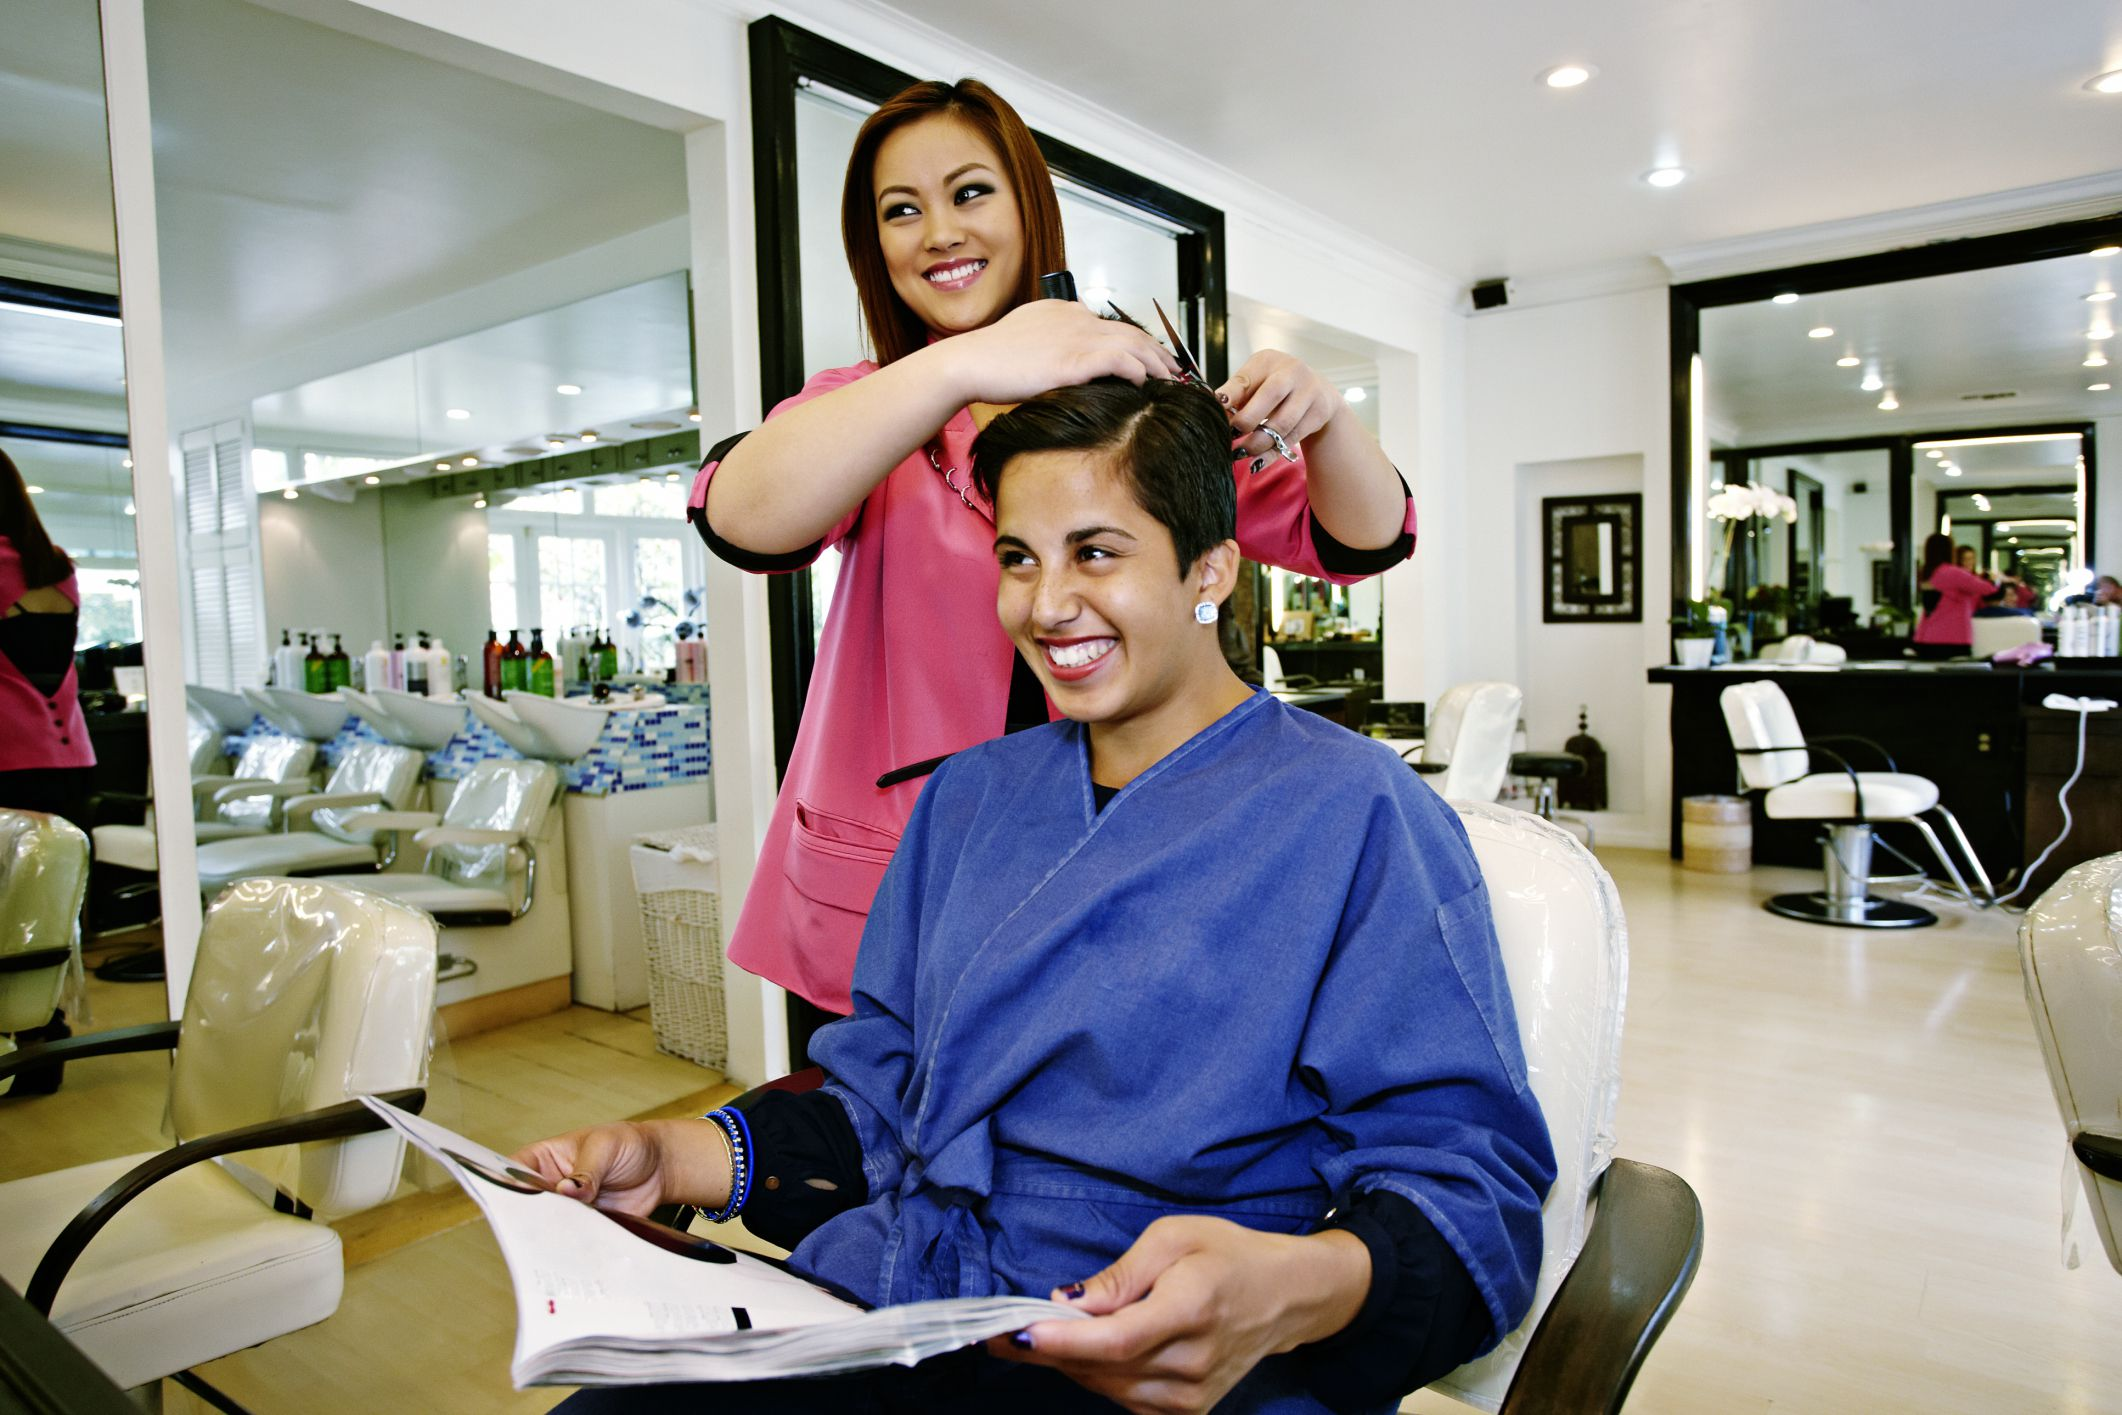 How To Get A Job As A Hair Stylist